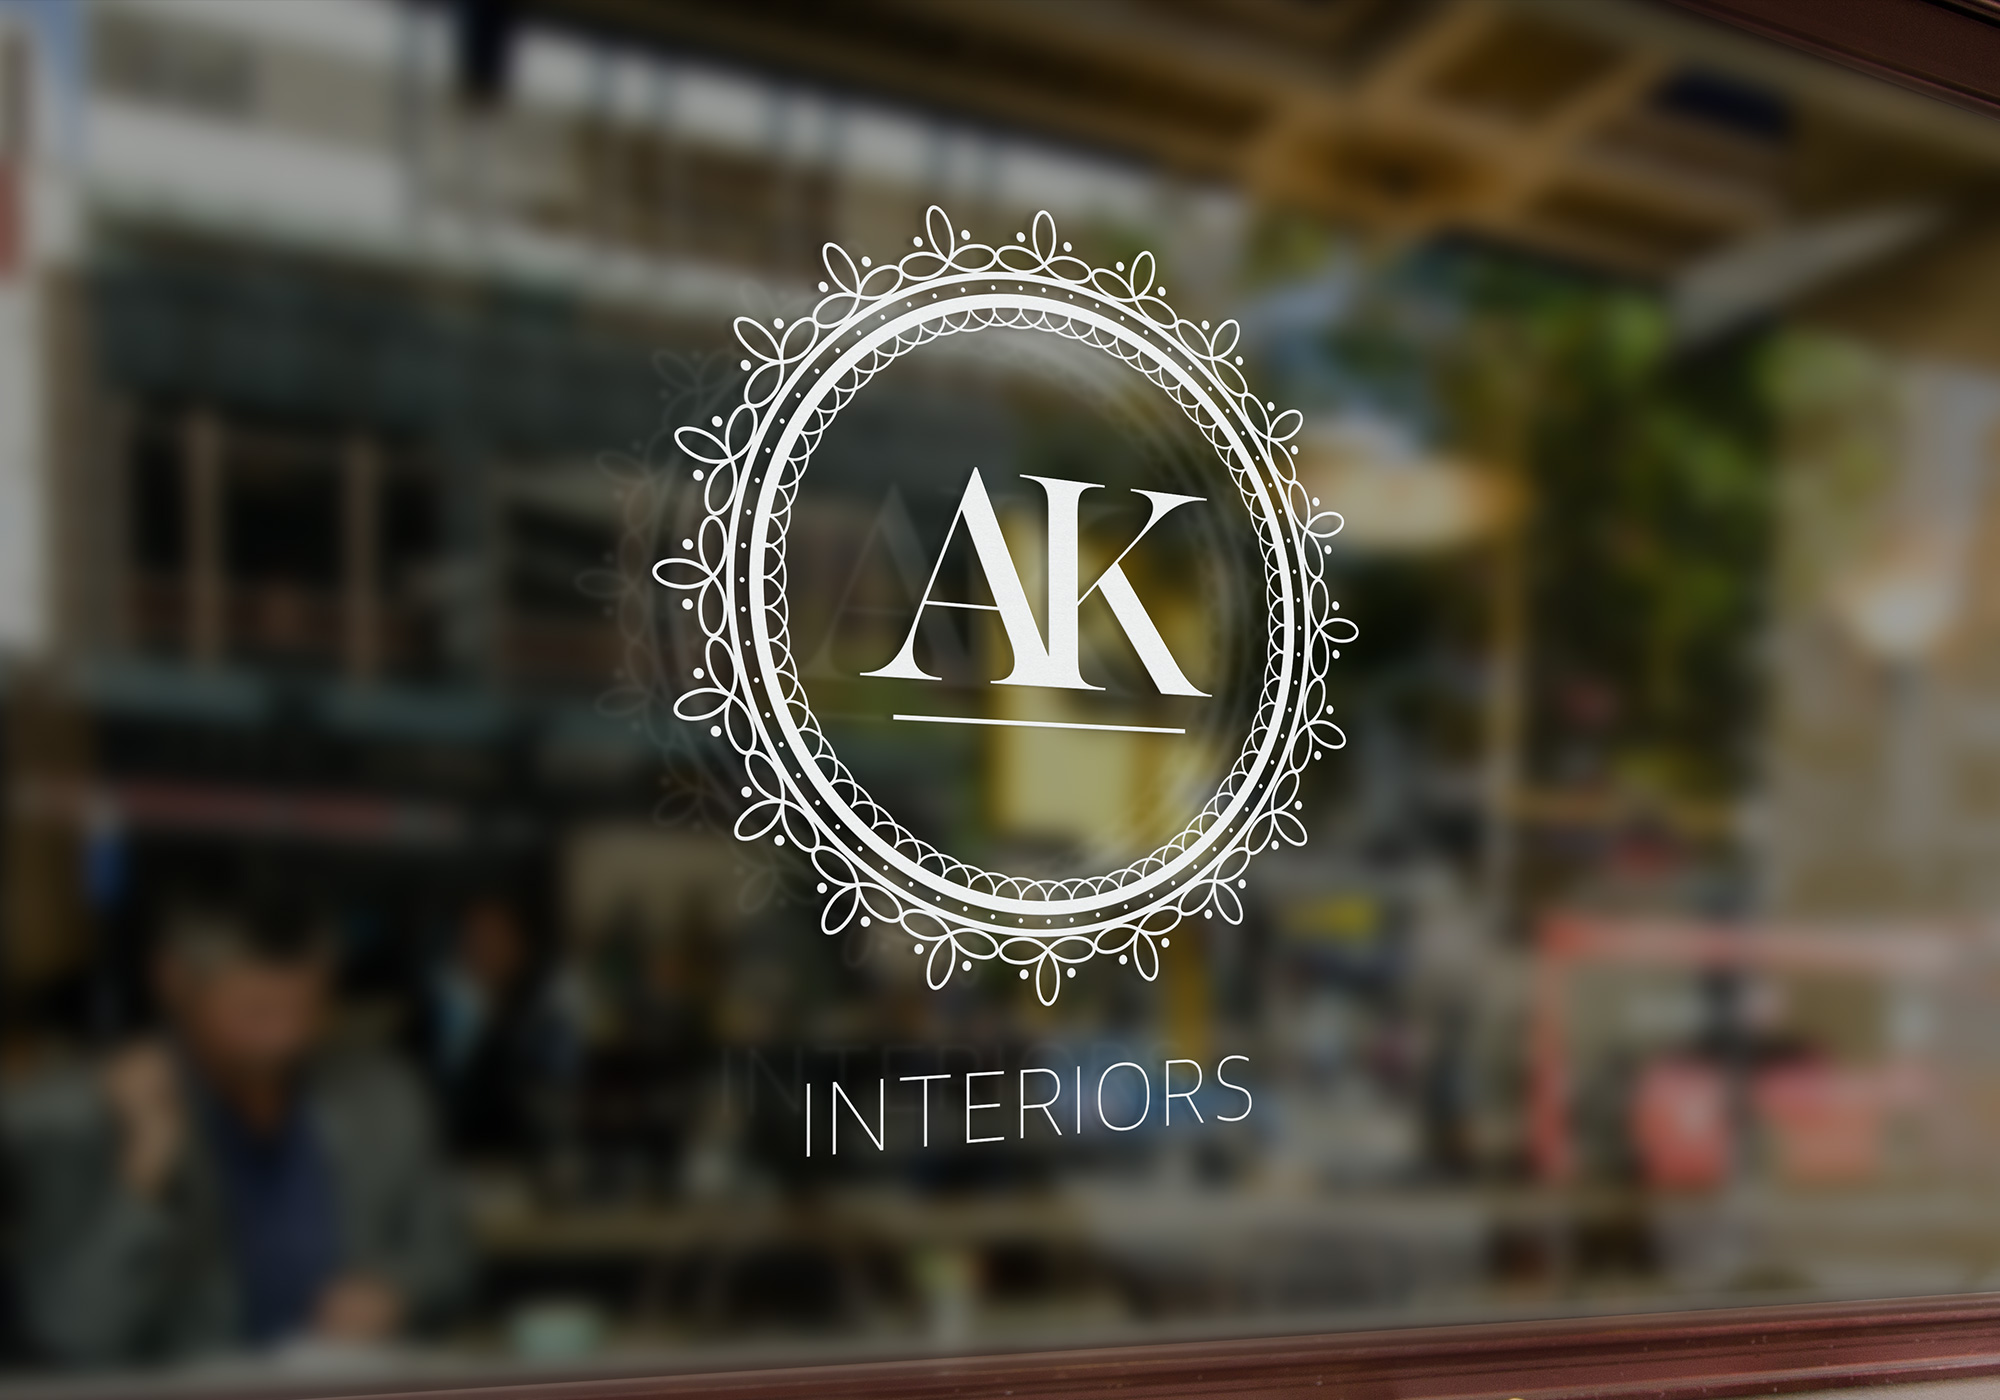 AK Interiors - Window Storefront Sign